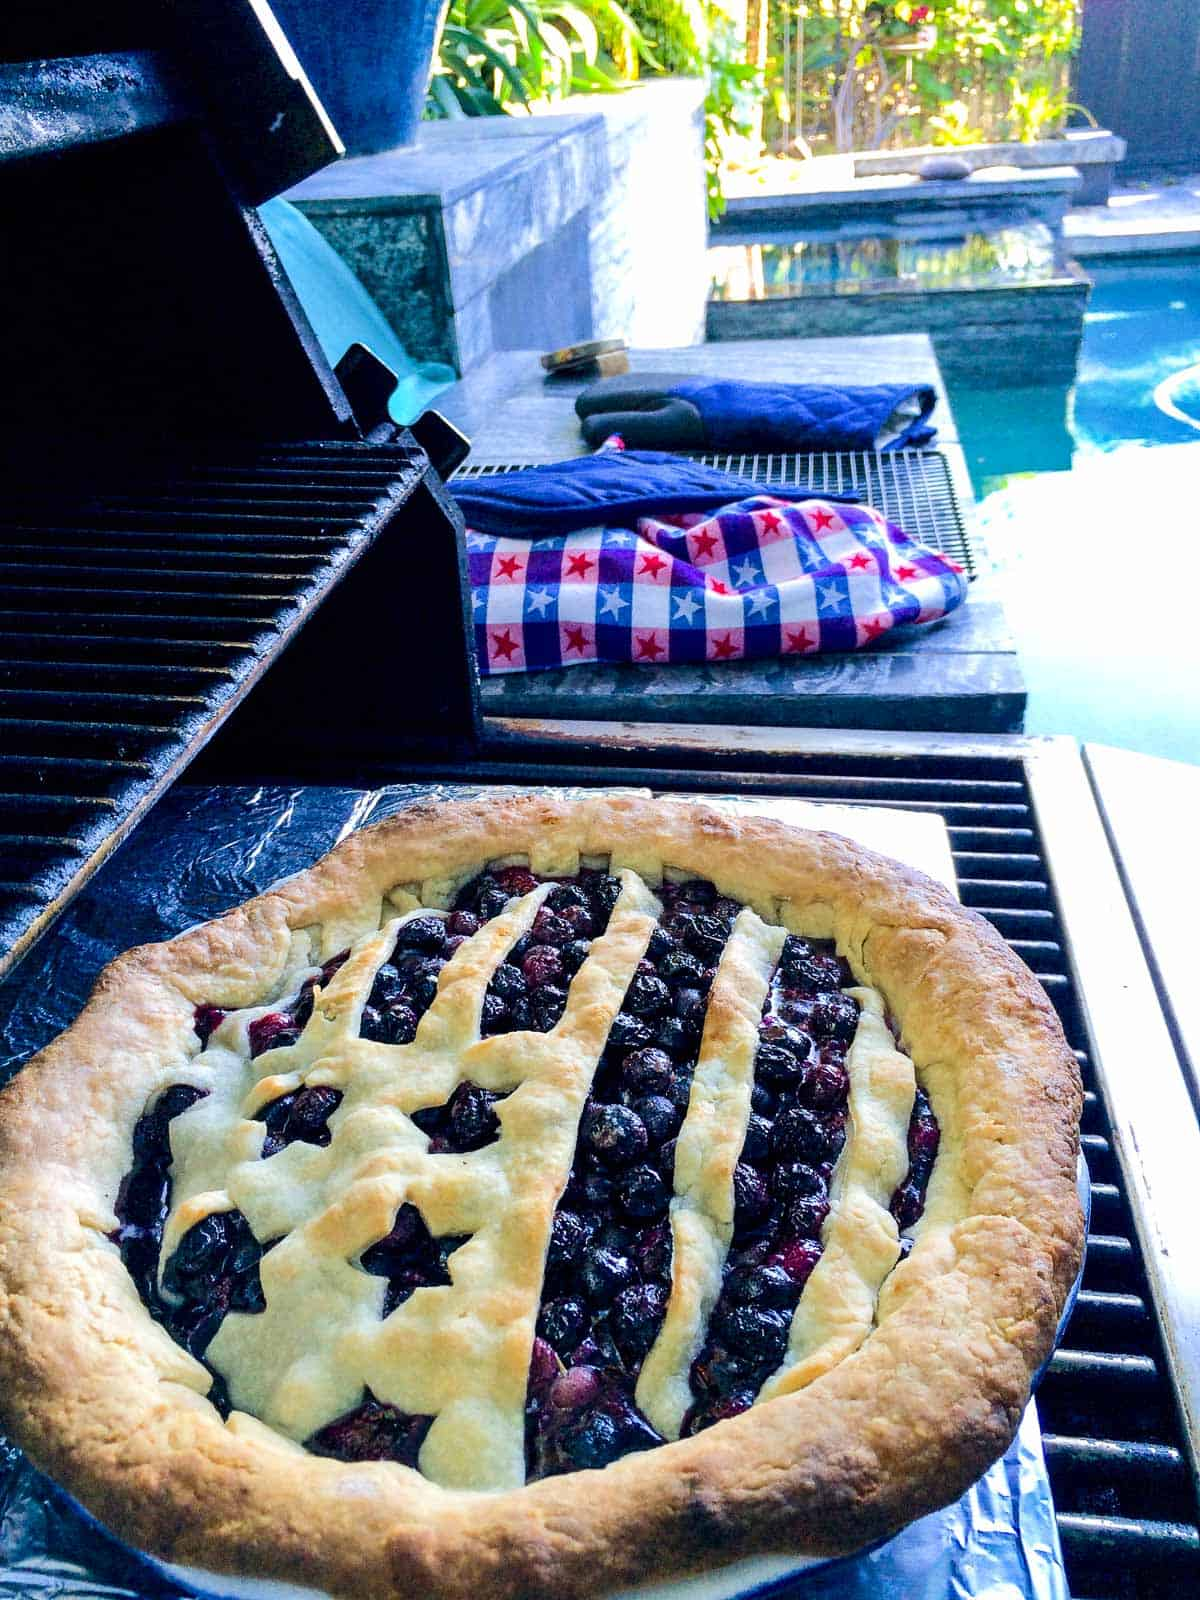 A blueberry pie with a flag crust baked on a grill.